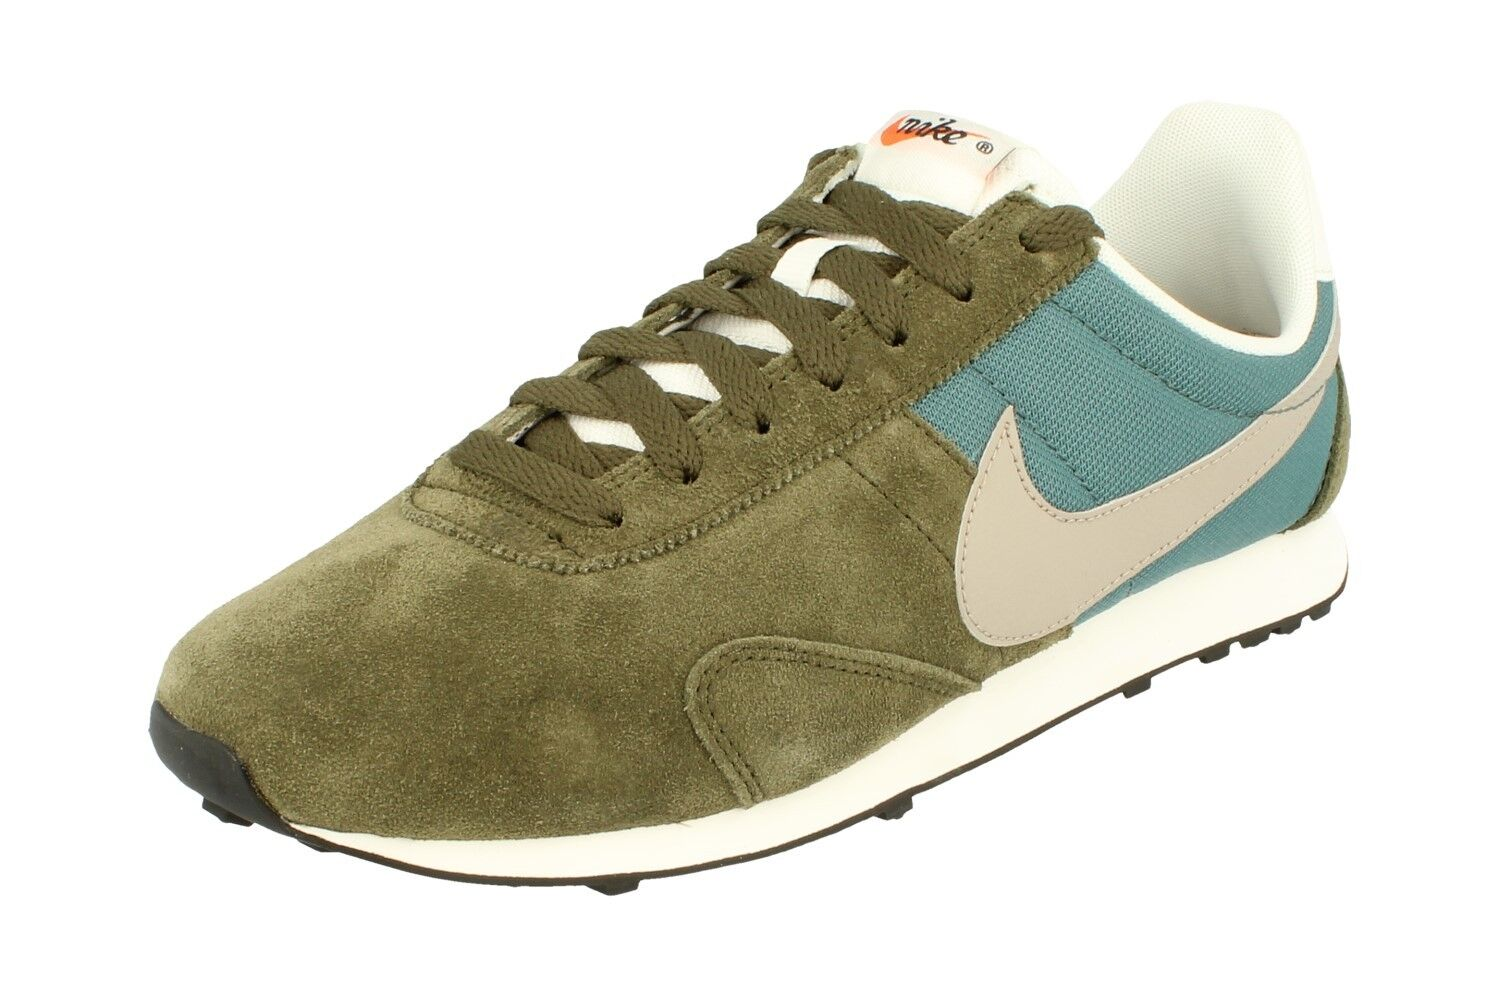 Nike Pre Montreal 17 Zapatos Hombre Running Trainers 898031 Sneakers Zapatos 17 301 5f4c75